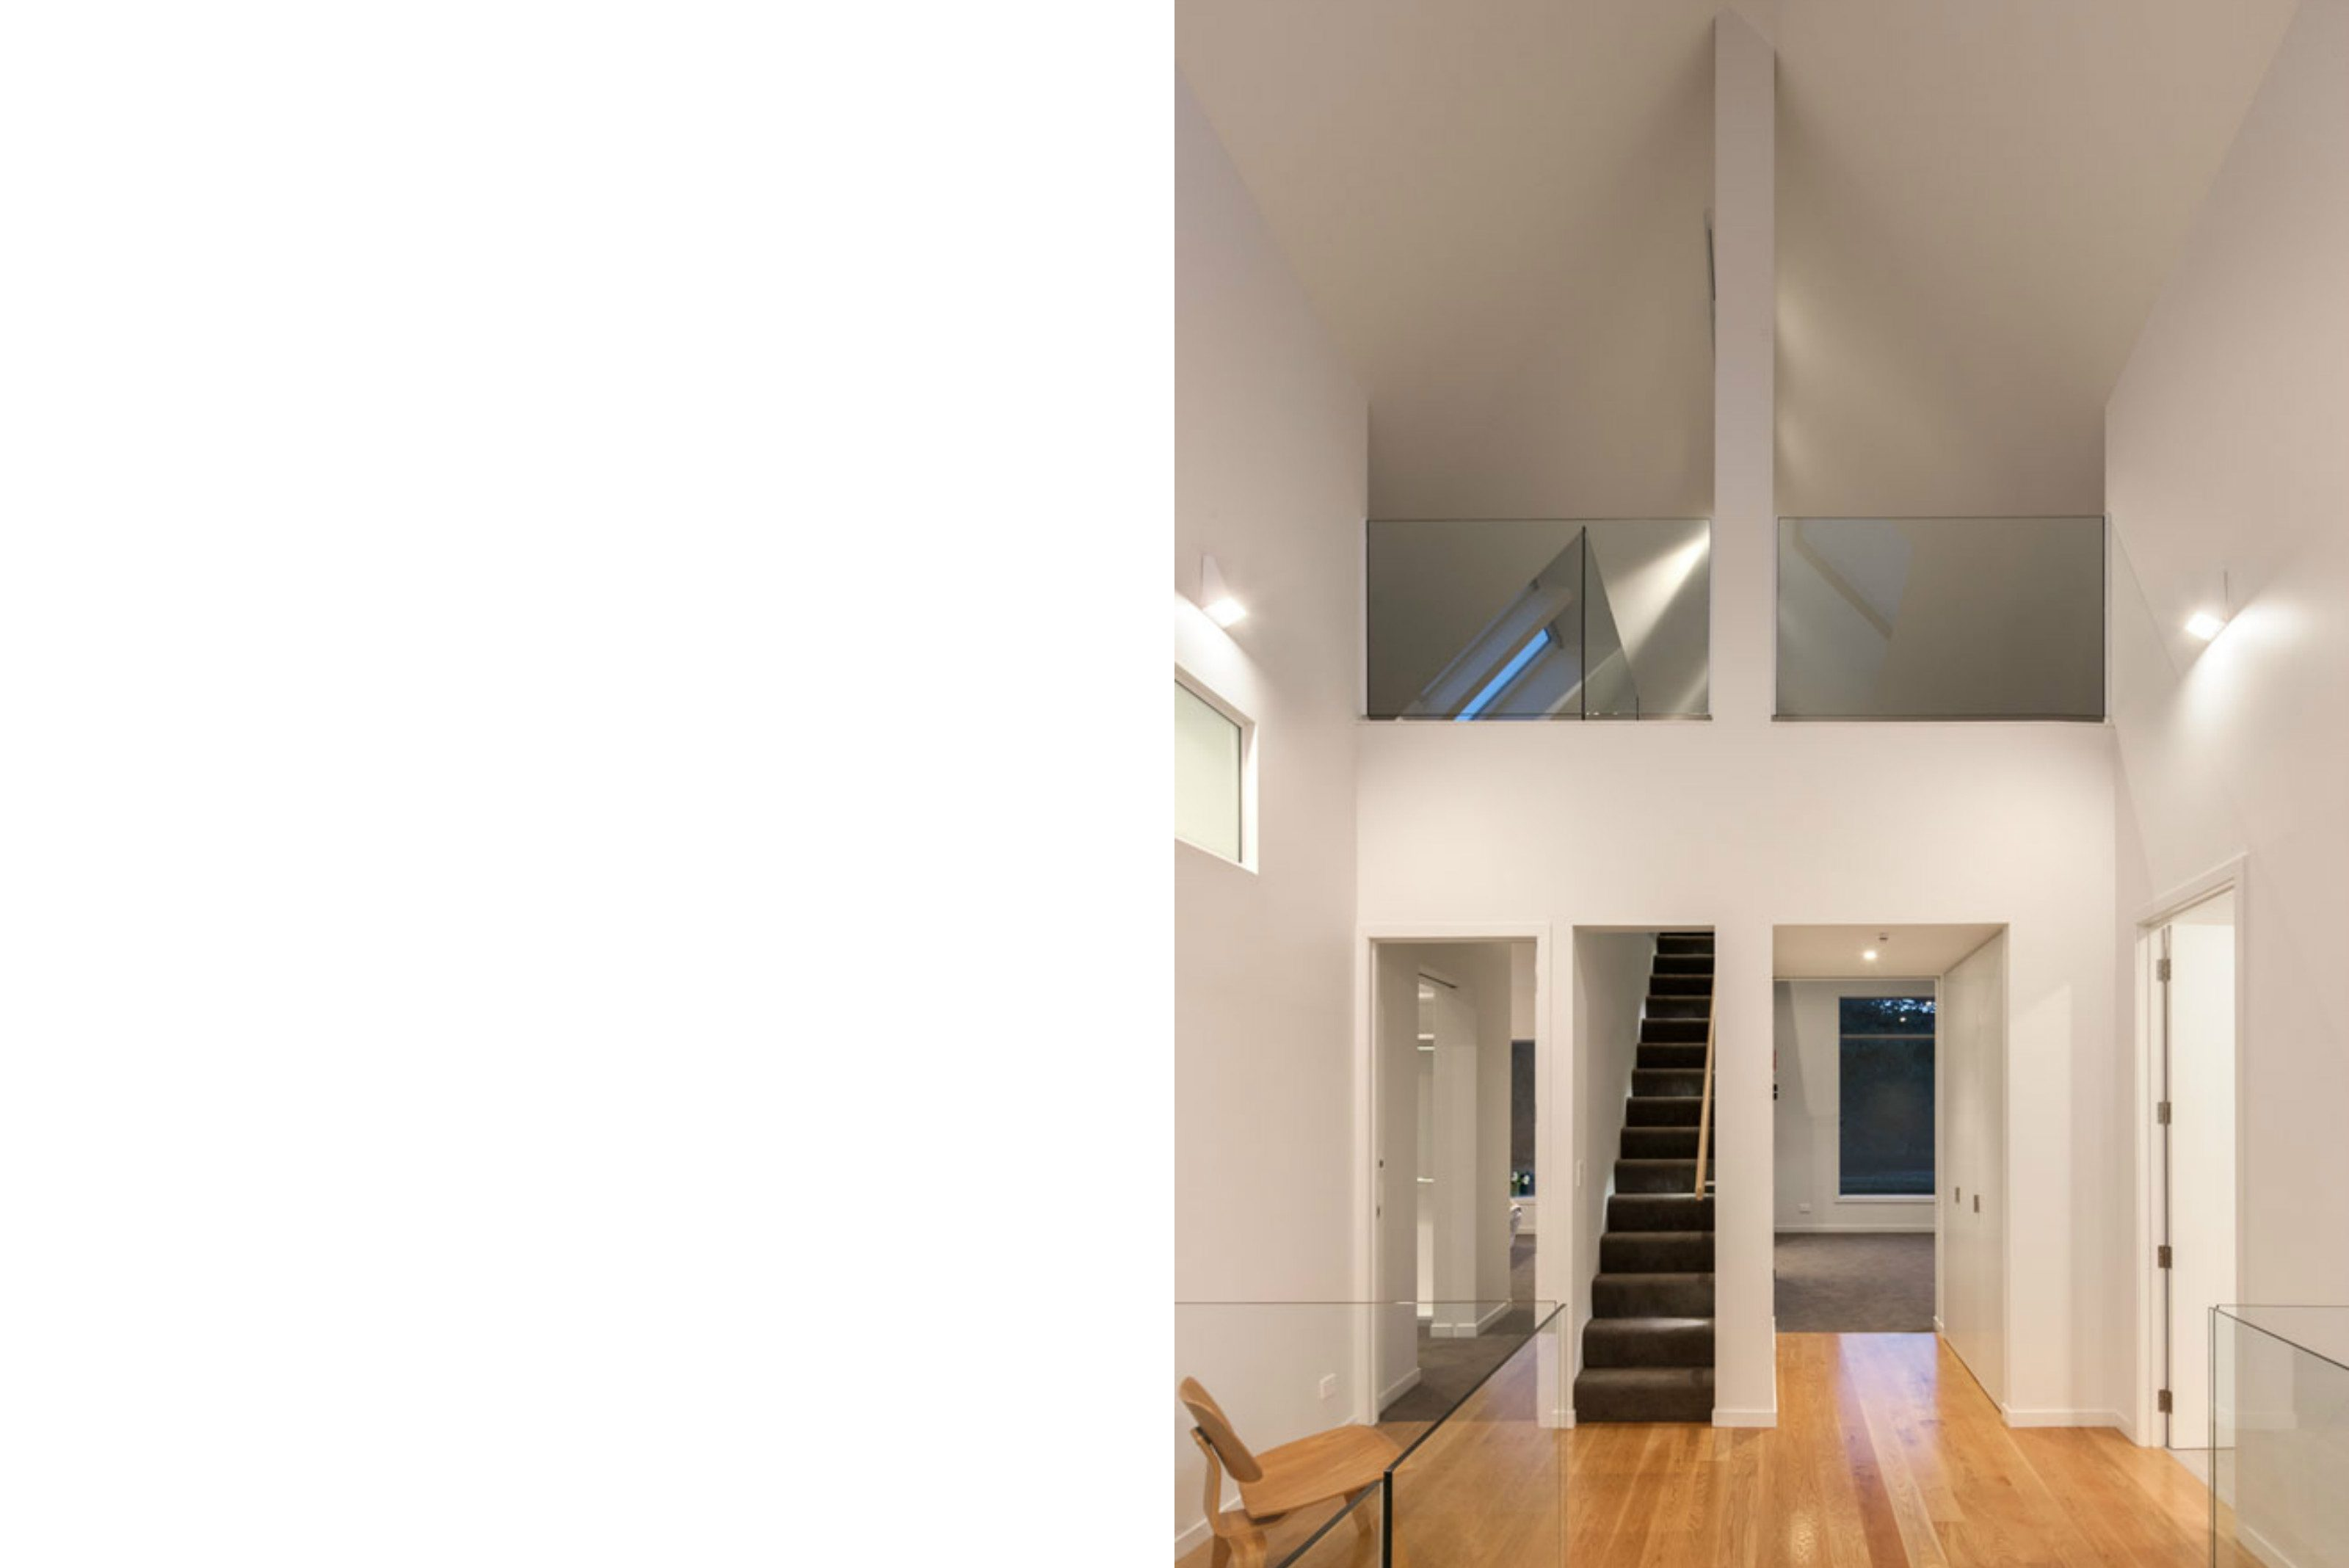 Double height space timber floors glass balustrade mezzanine